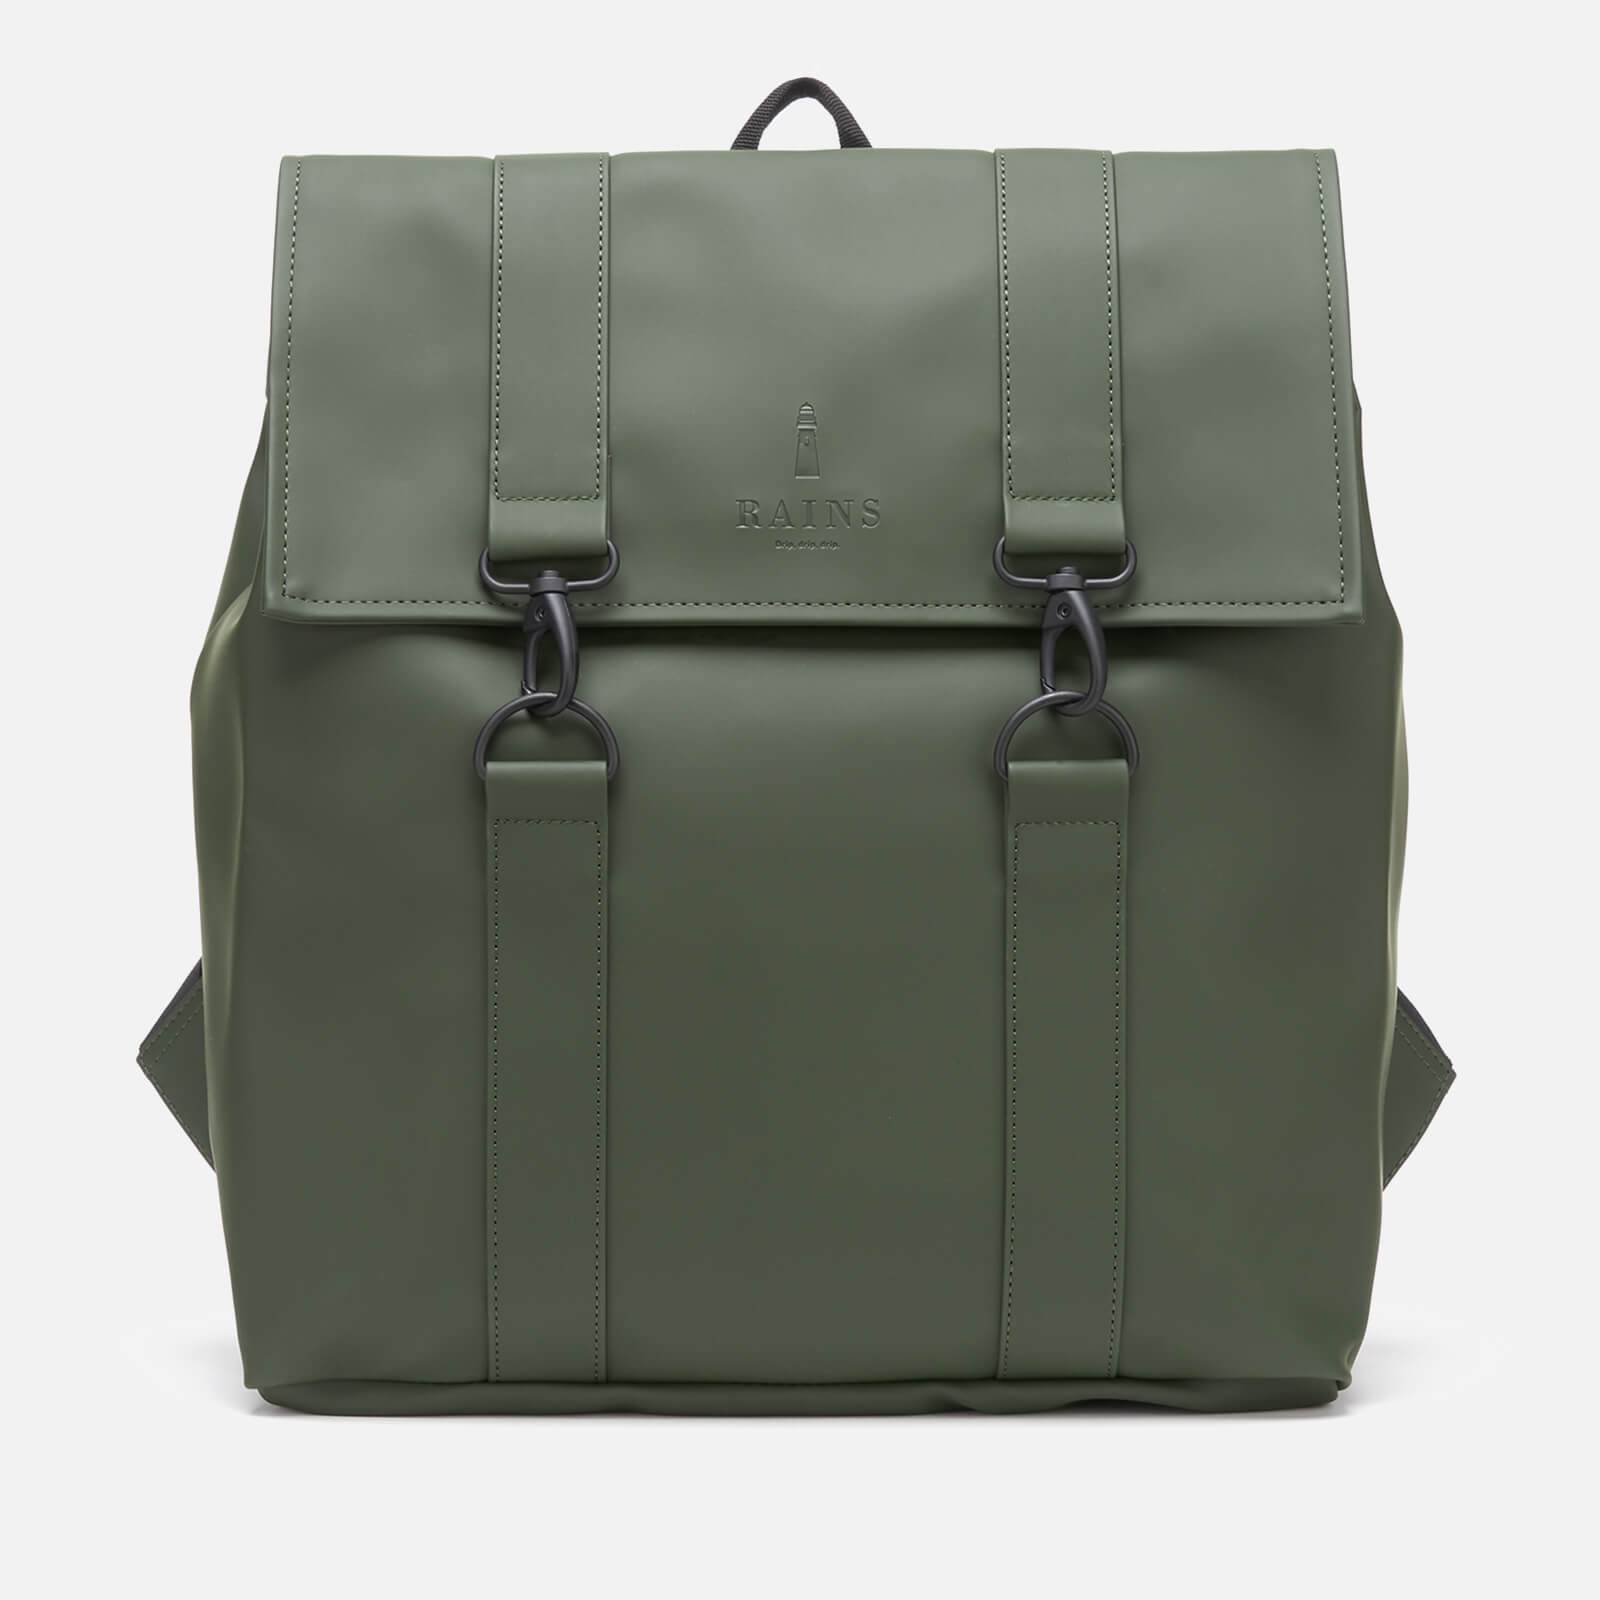 RAINS Men's MSN Bag - Green